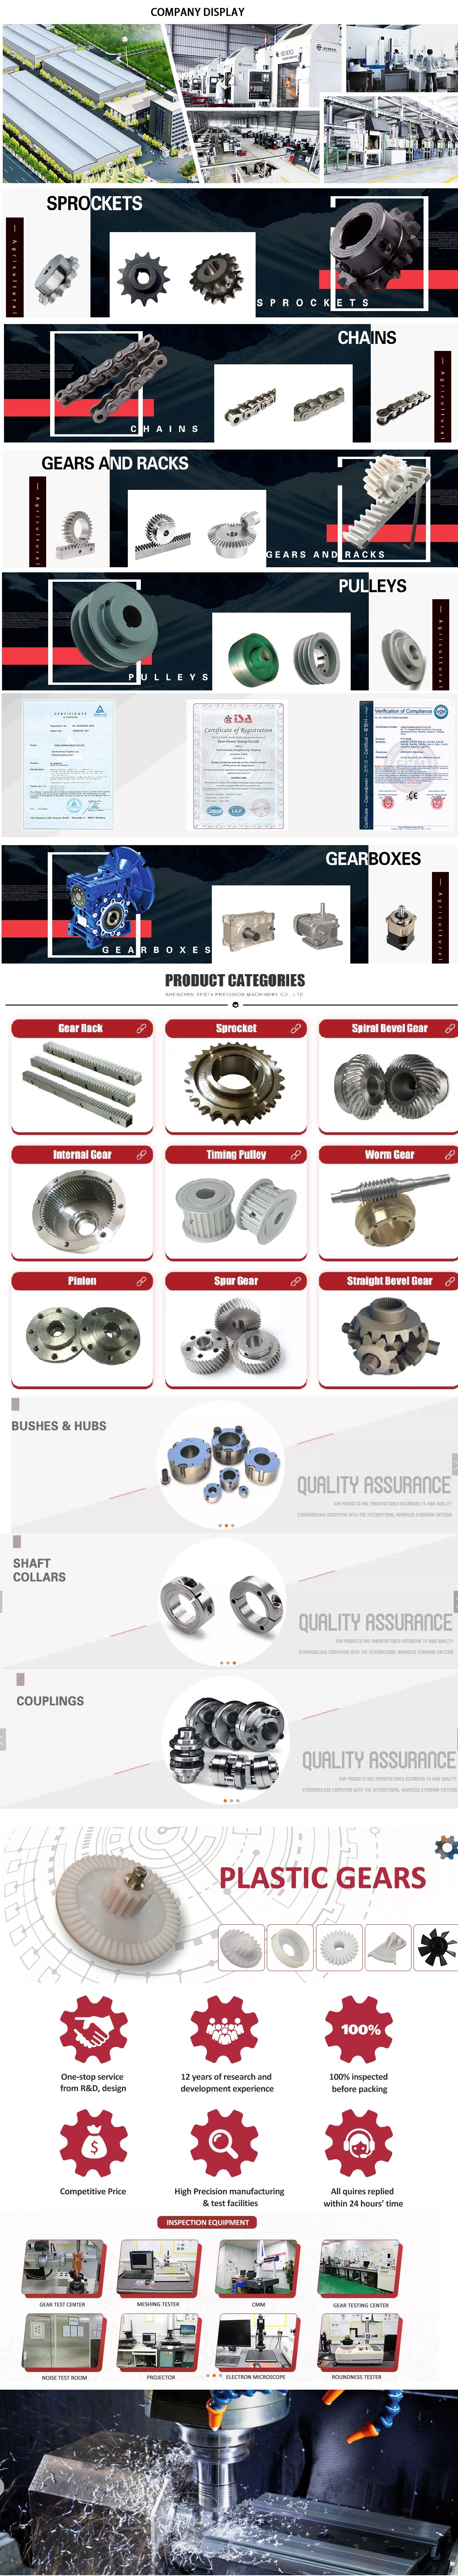 China manufacturer & factory supplier for Tractor gearbox for PTO drive shaft With high quality best price & service